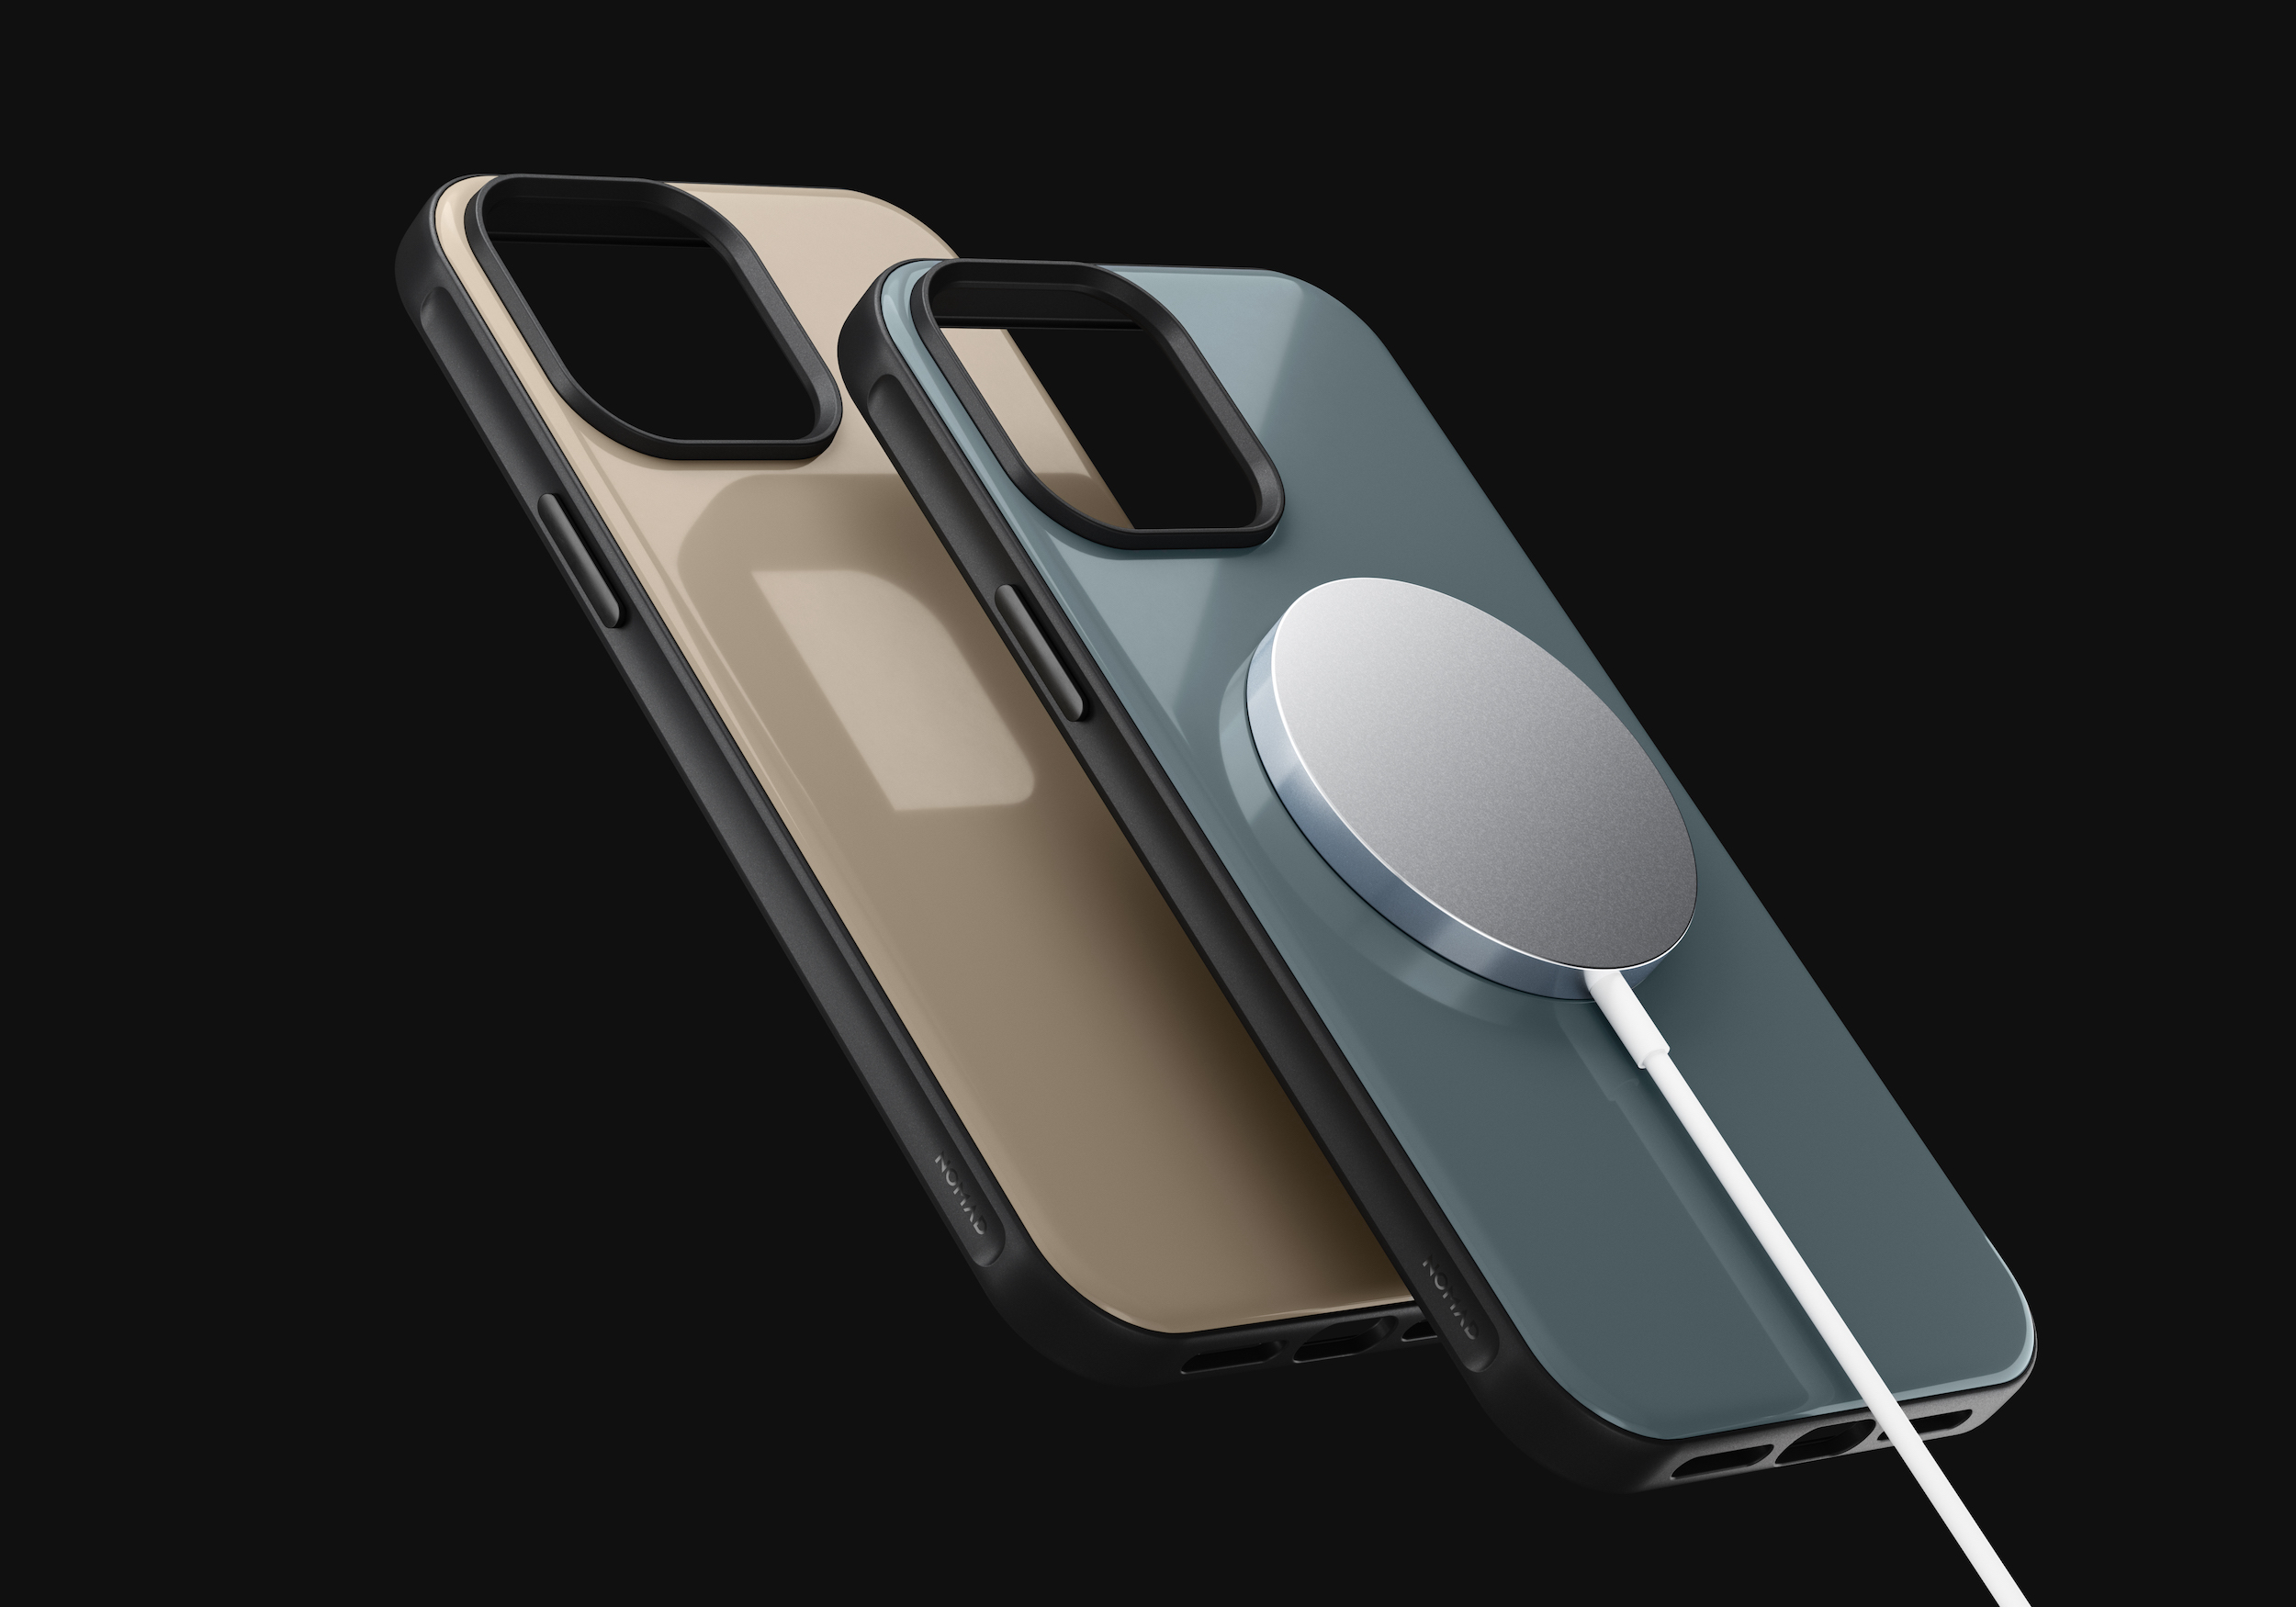 Nomad Announces New iPhone 13 Cases With NFC-Shareable 'Digital Business Cards'